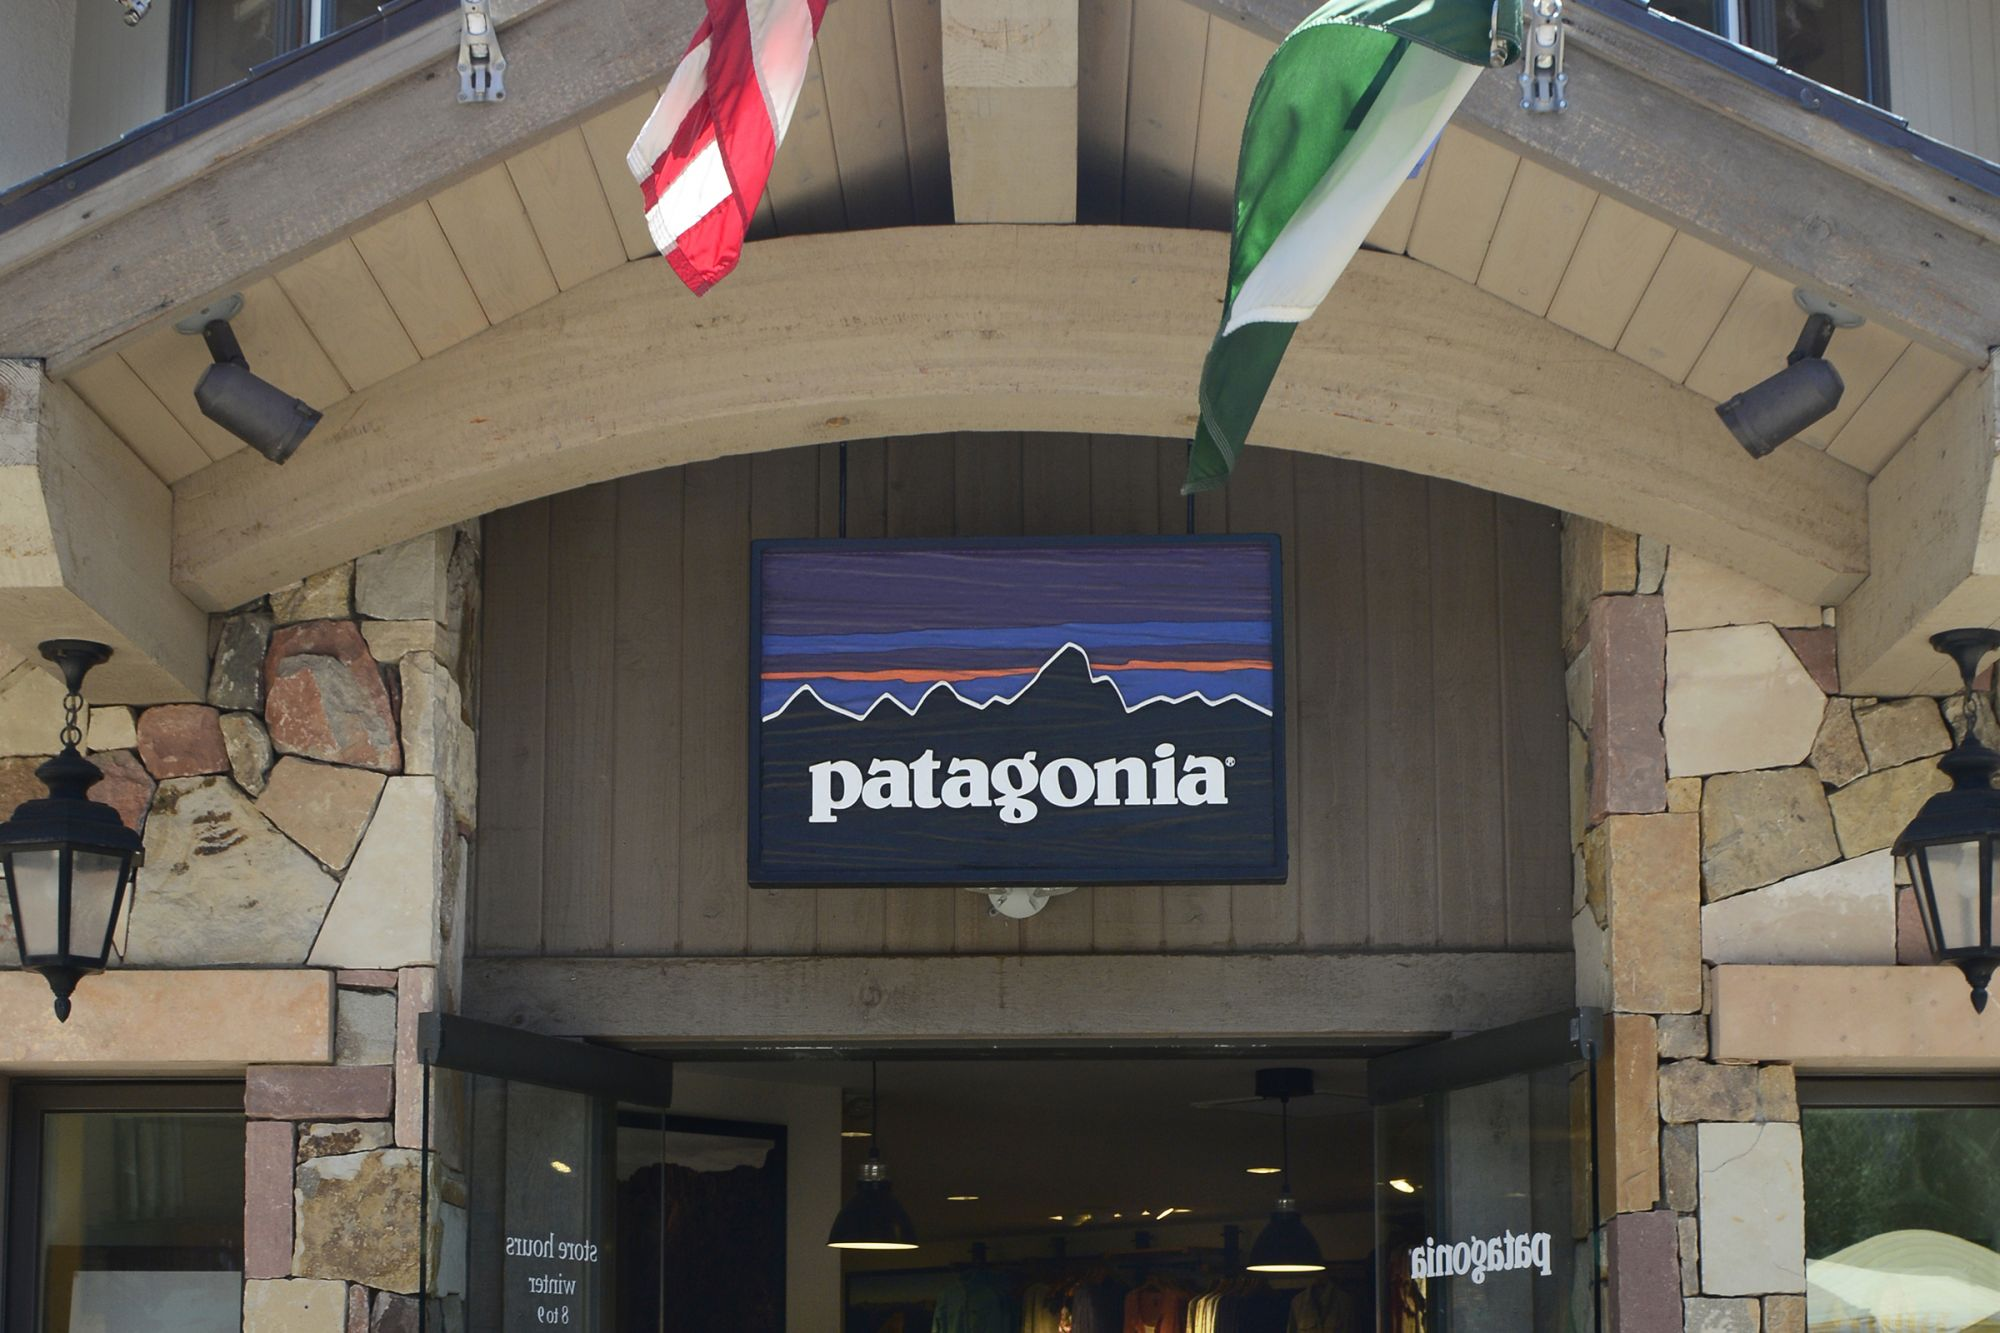 How a Sense of Purpose Is Critical to Unleashing Your Company's Full Potential. Just Ask Patagonia.